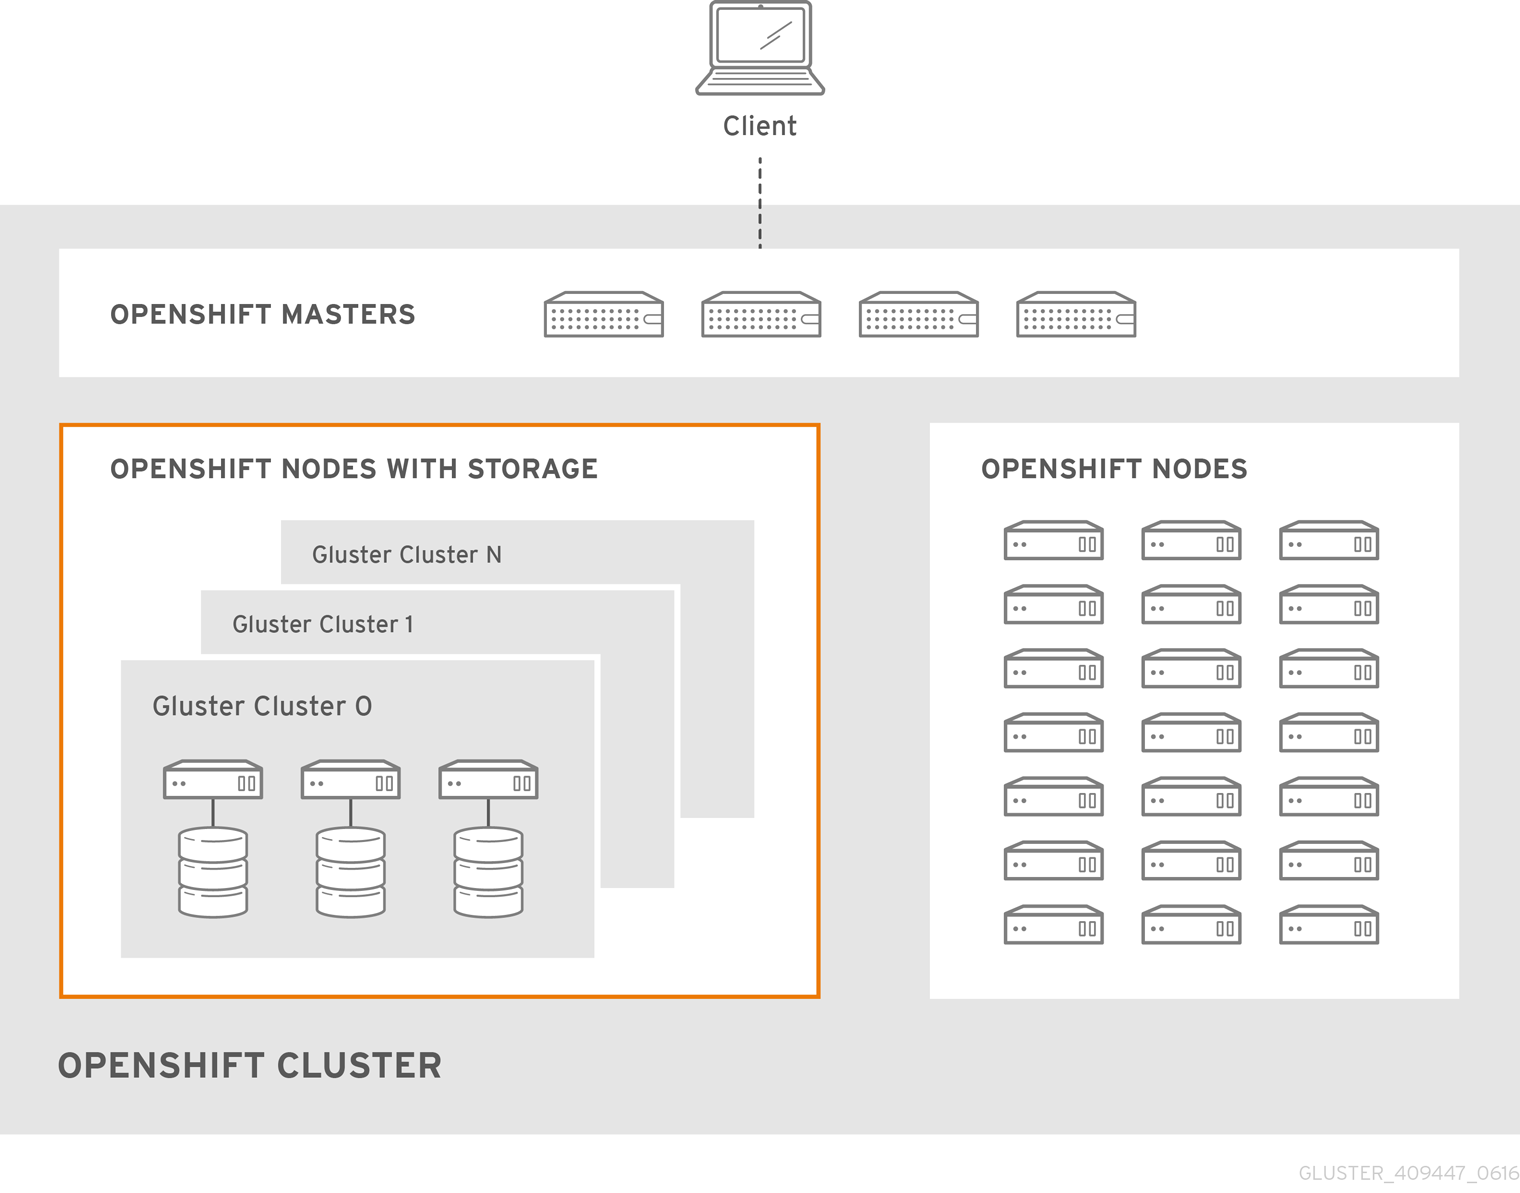 Architecture - Converged Mode for OpenShift Container Platform